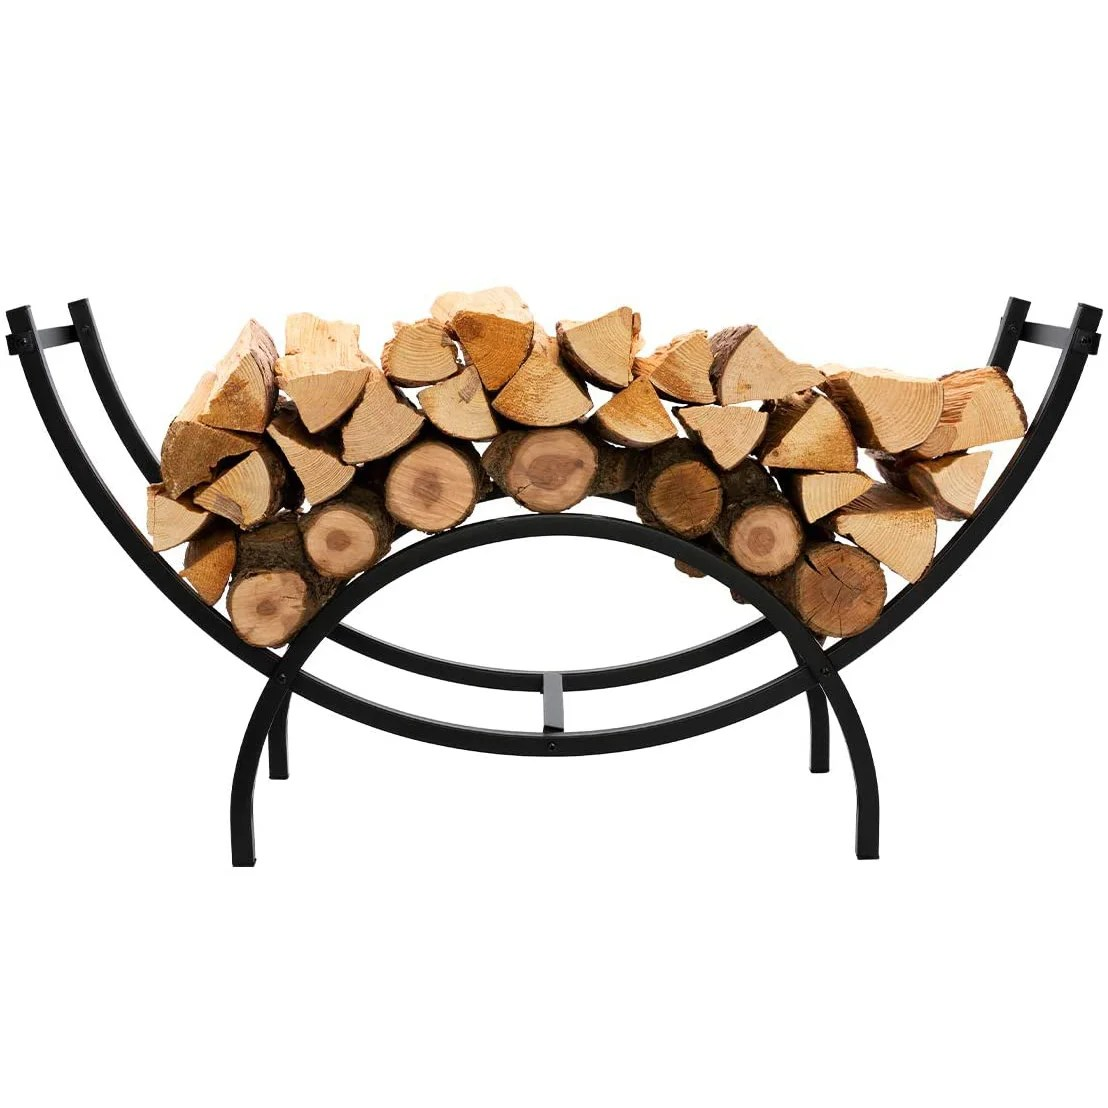 arlmont co curved heavy duty indoor outdoor firewood racks 40 inches log rack half round for wood storage